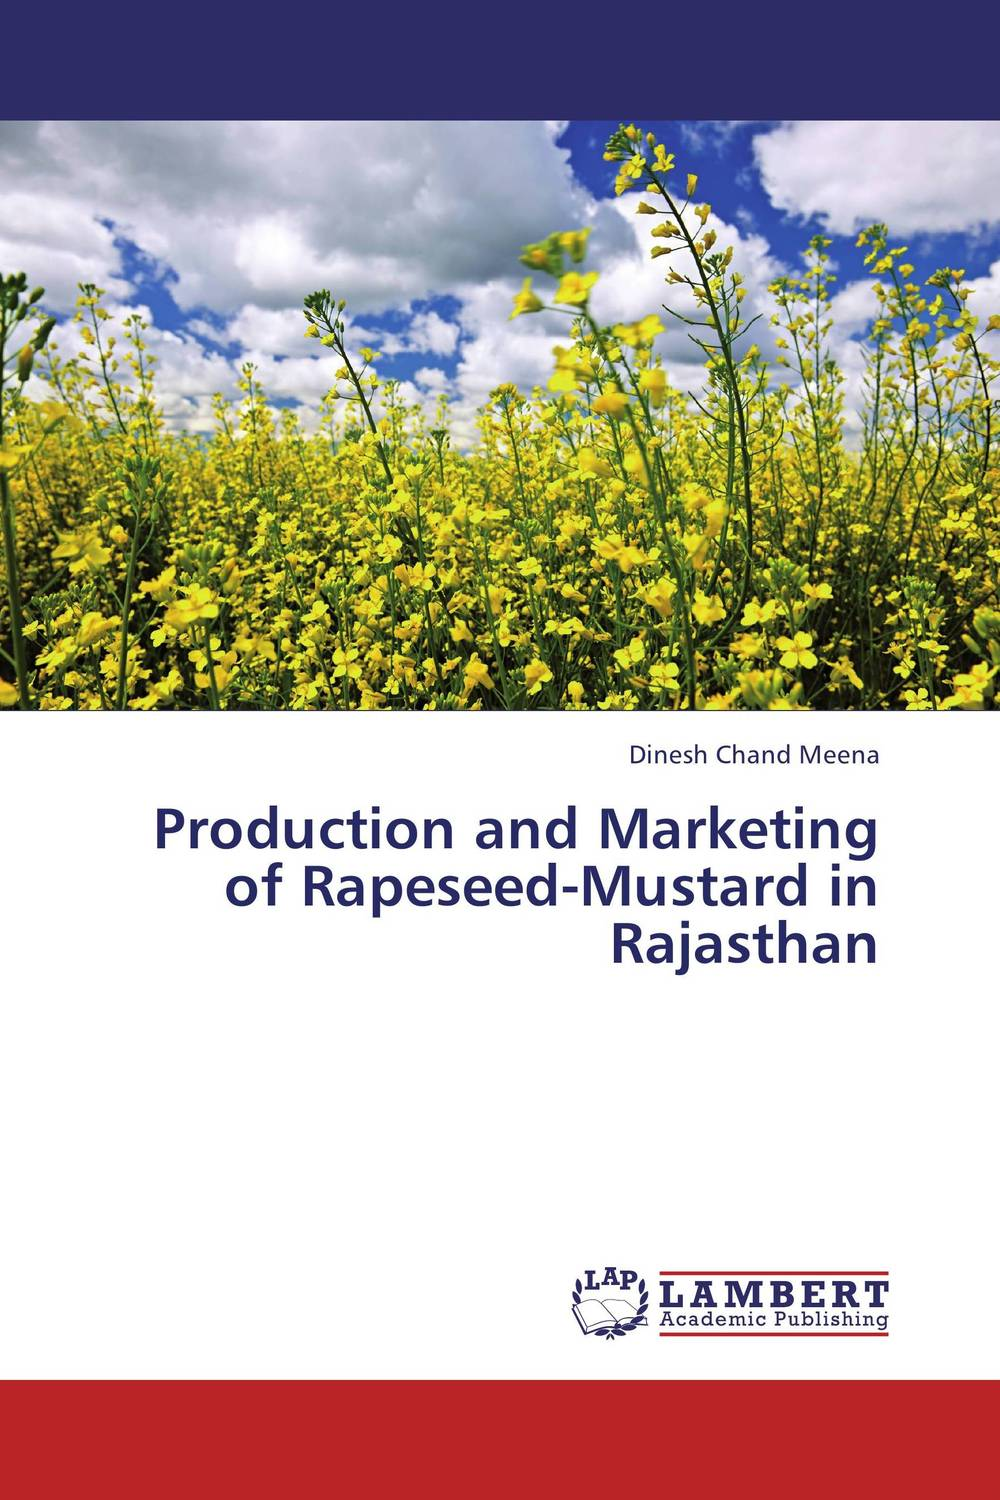 Production and Marketing of Rapeseed-Mustard in Rajasthan adding value to the citrus pulp by enzyme biotechnology production